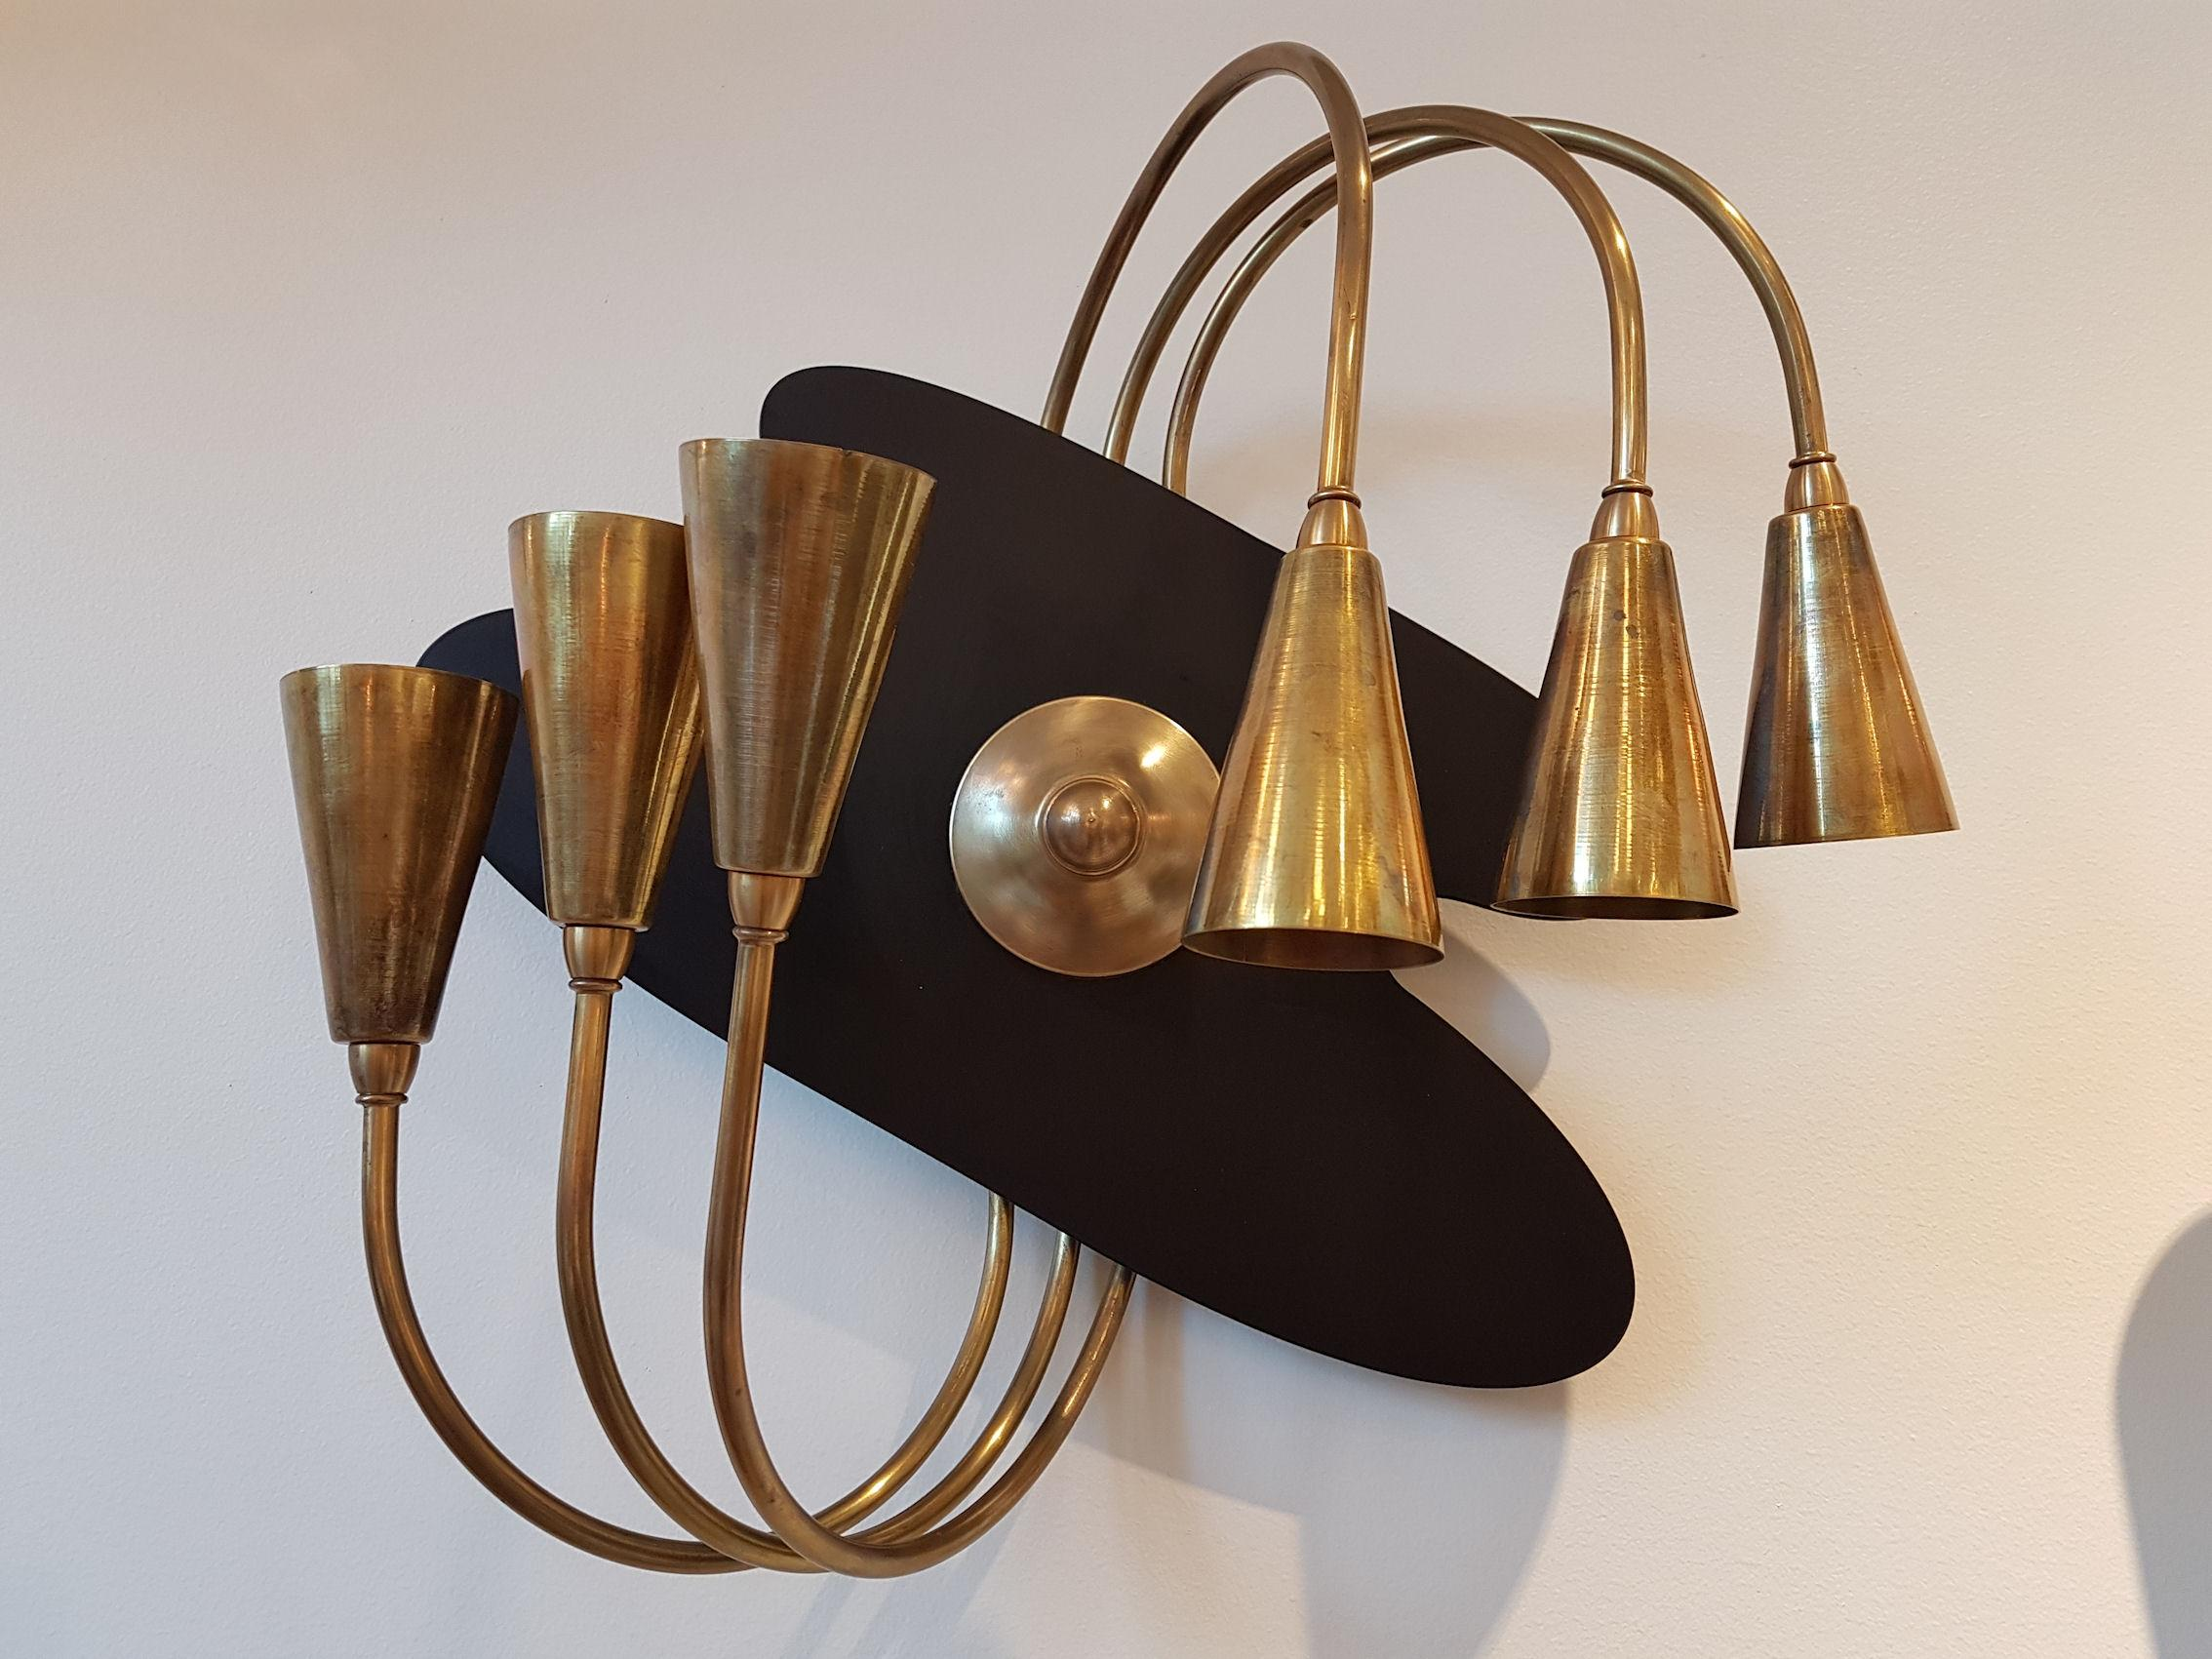 Pair of Large Brass Mid-Century Modern Wall Sconces ... on Mid Century Modern Sconces id=20457